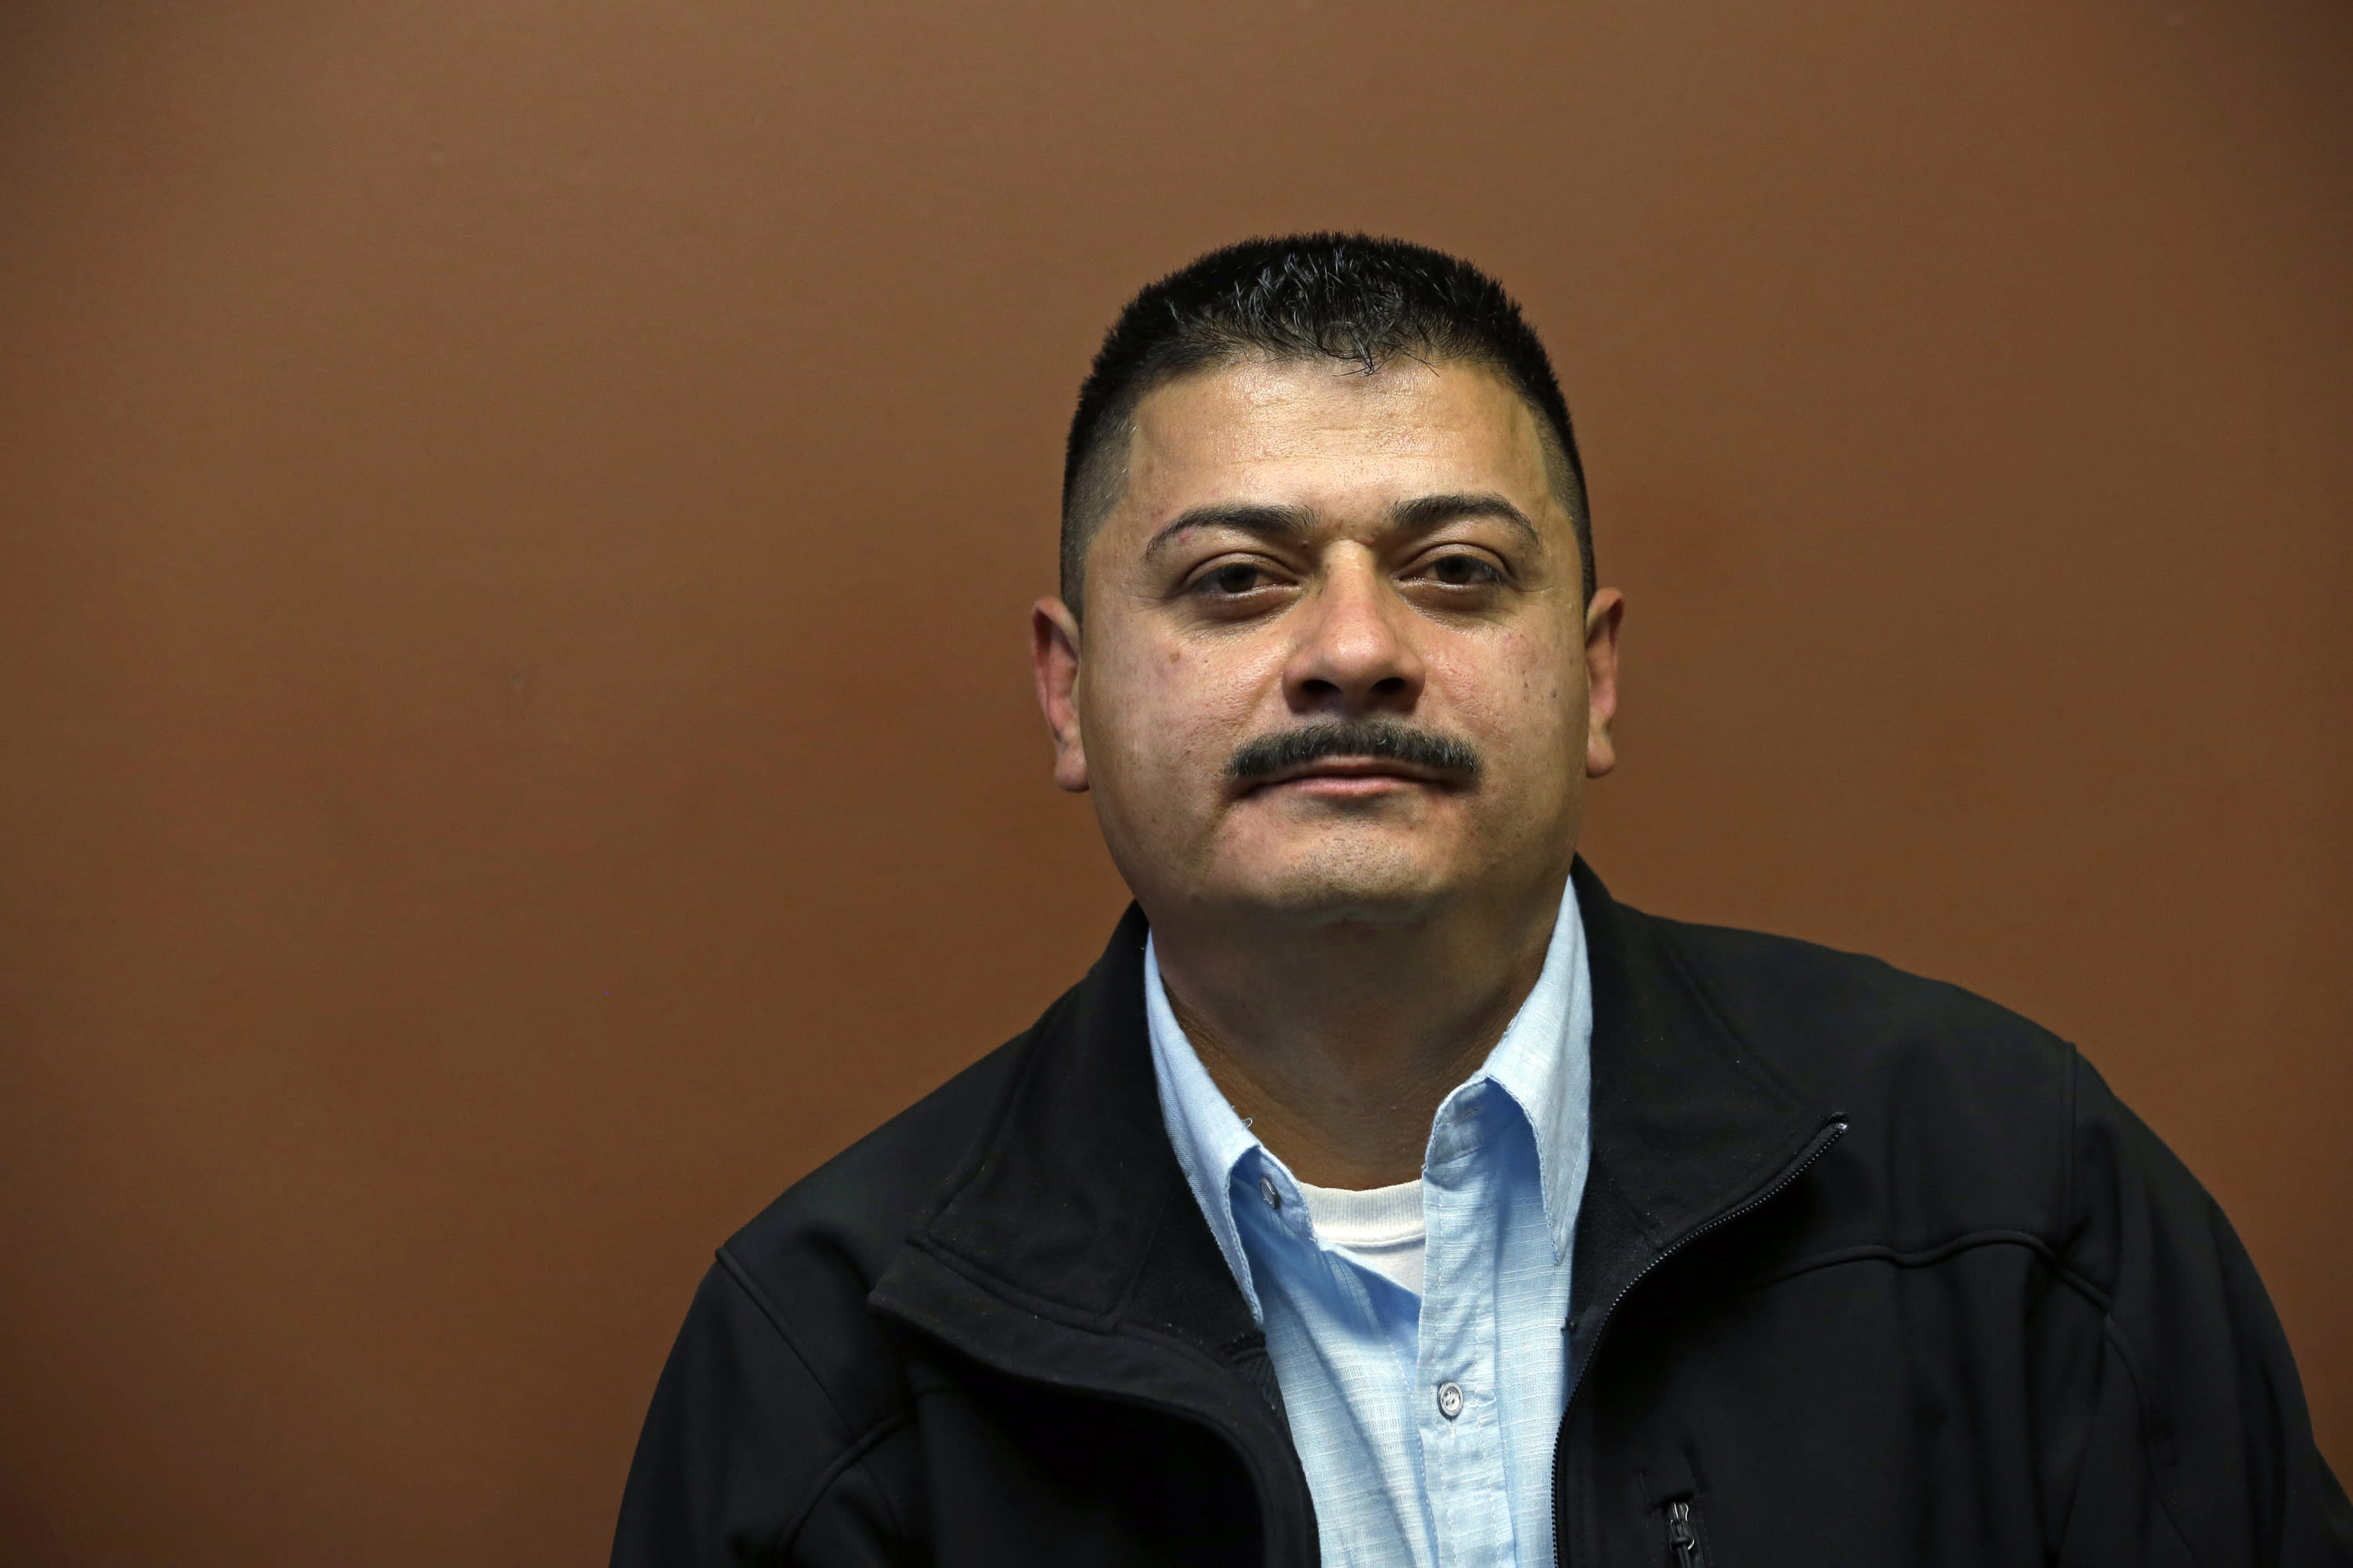 FILE - In this Oct. 17, 2014 file photo, Ignacio Lanuza sits for a portrait in Seattle. A federal judge on Tuesday, Oct. 29, 2019, criticized the Justice Department for seeking legal fees from Lanuza, a Mexican immigrant who was the victim of a forgery by a government lawyer. (AP Photo/Elaine Thompson, File)